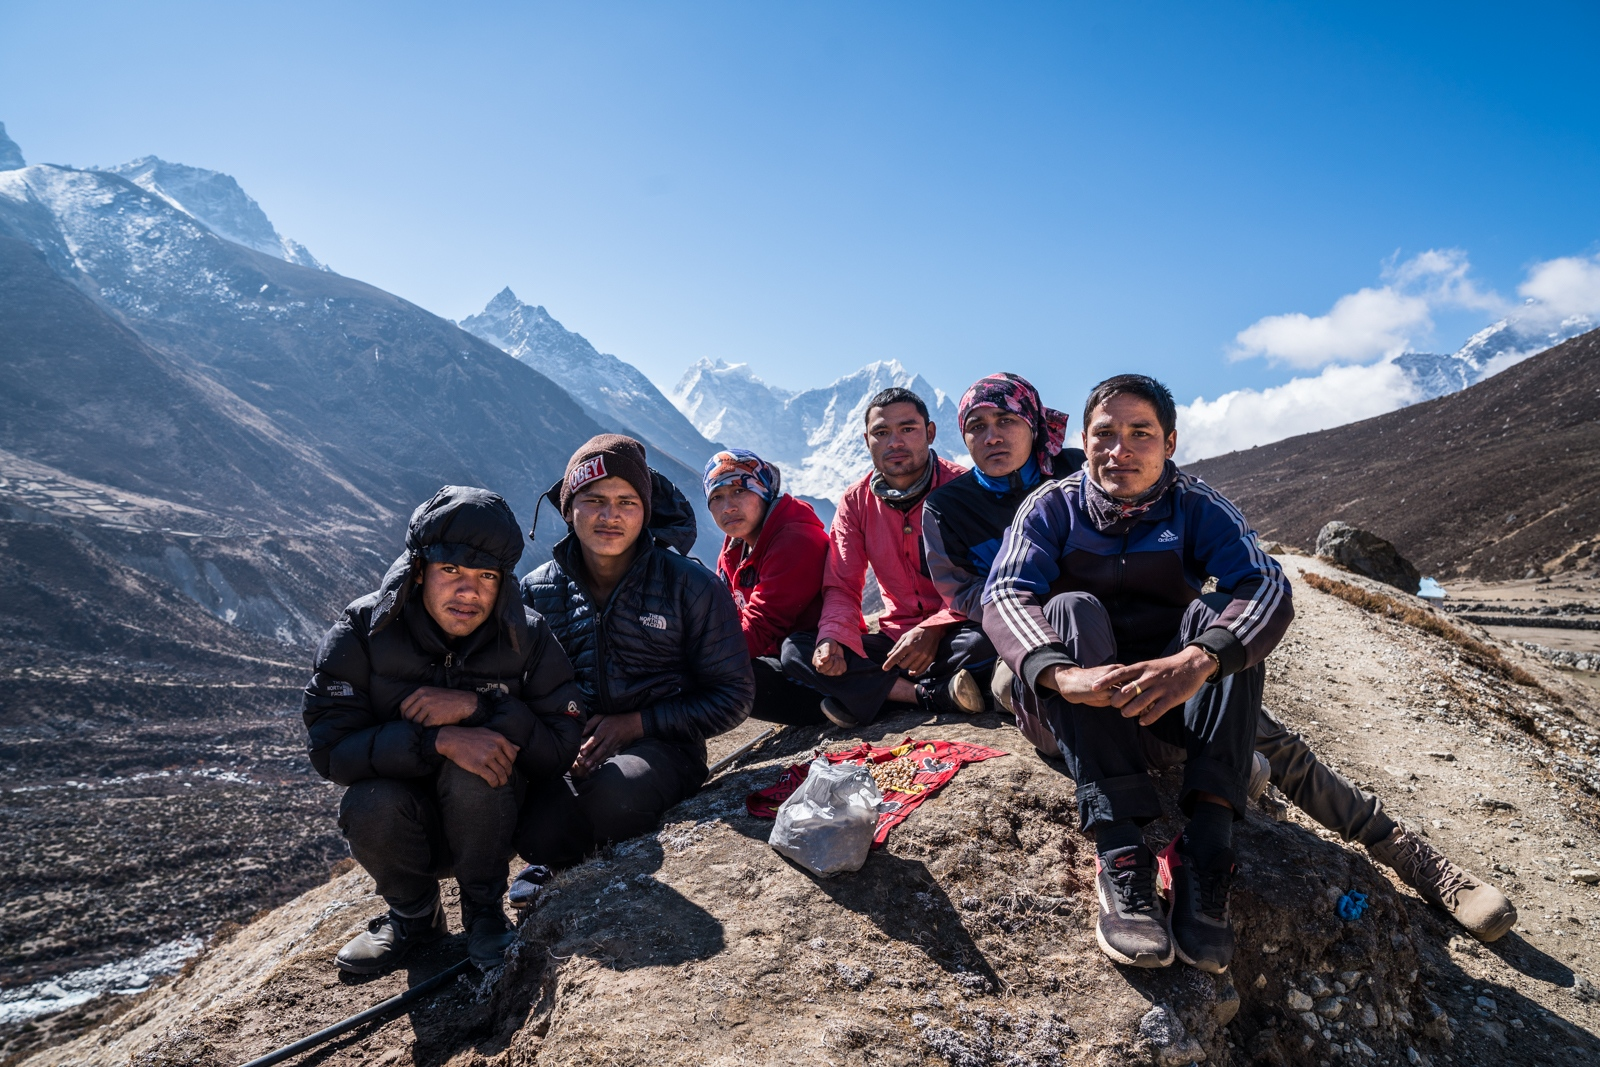 Nepali porters carrying a load for Indian tourists take a break on an old glacial moraine at around 5000m above sea level.